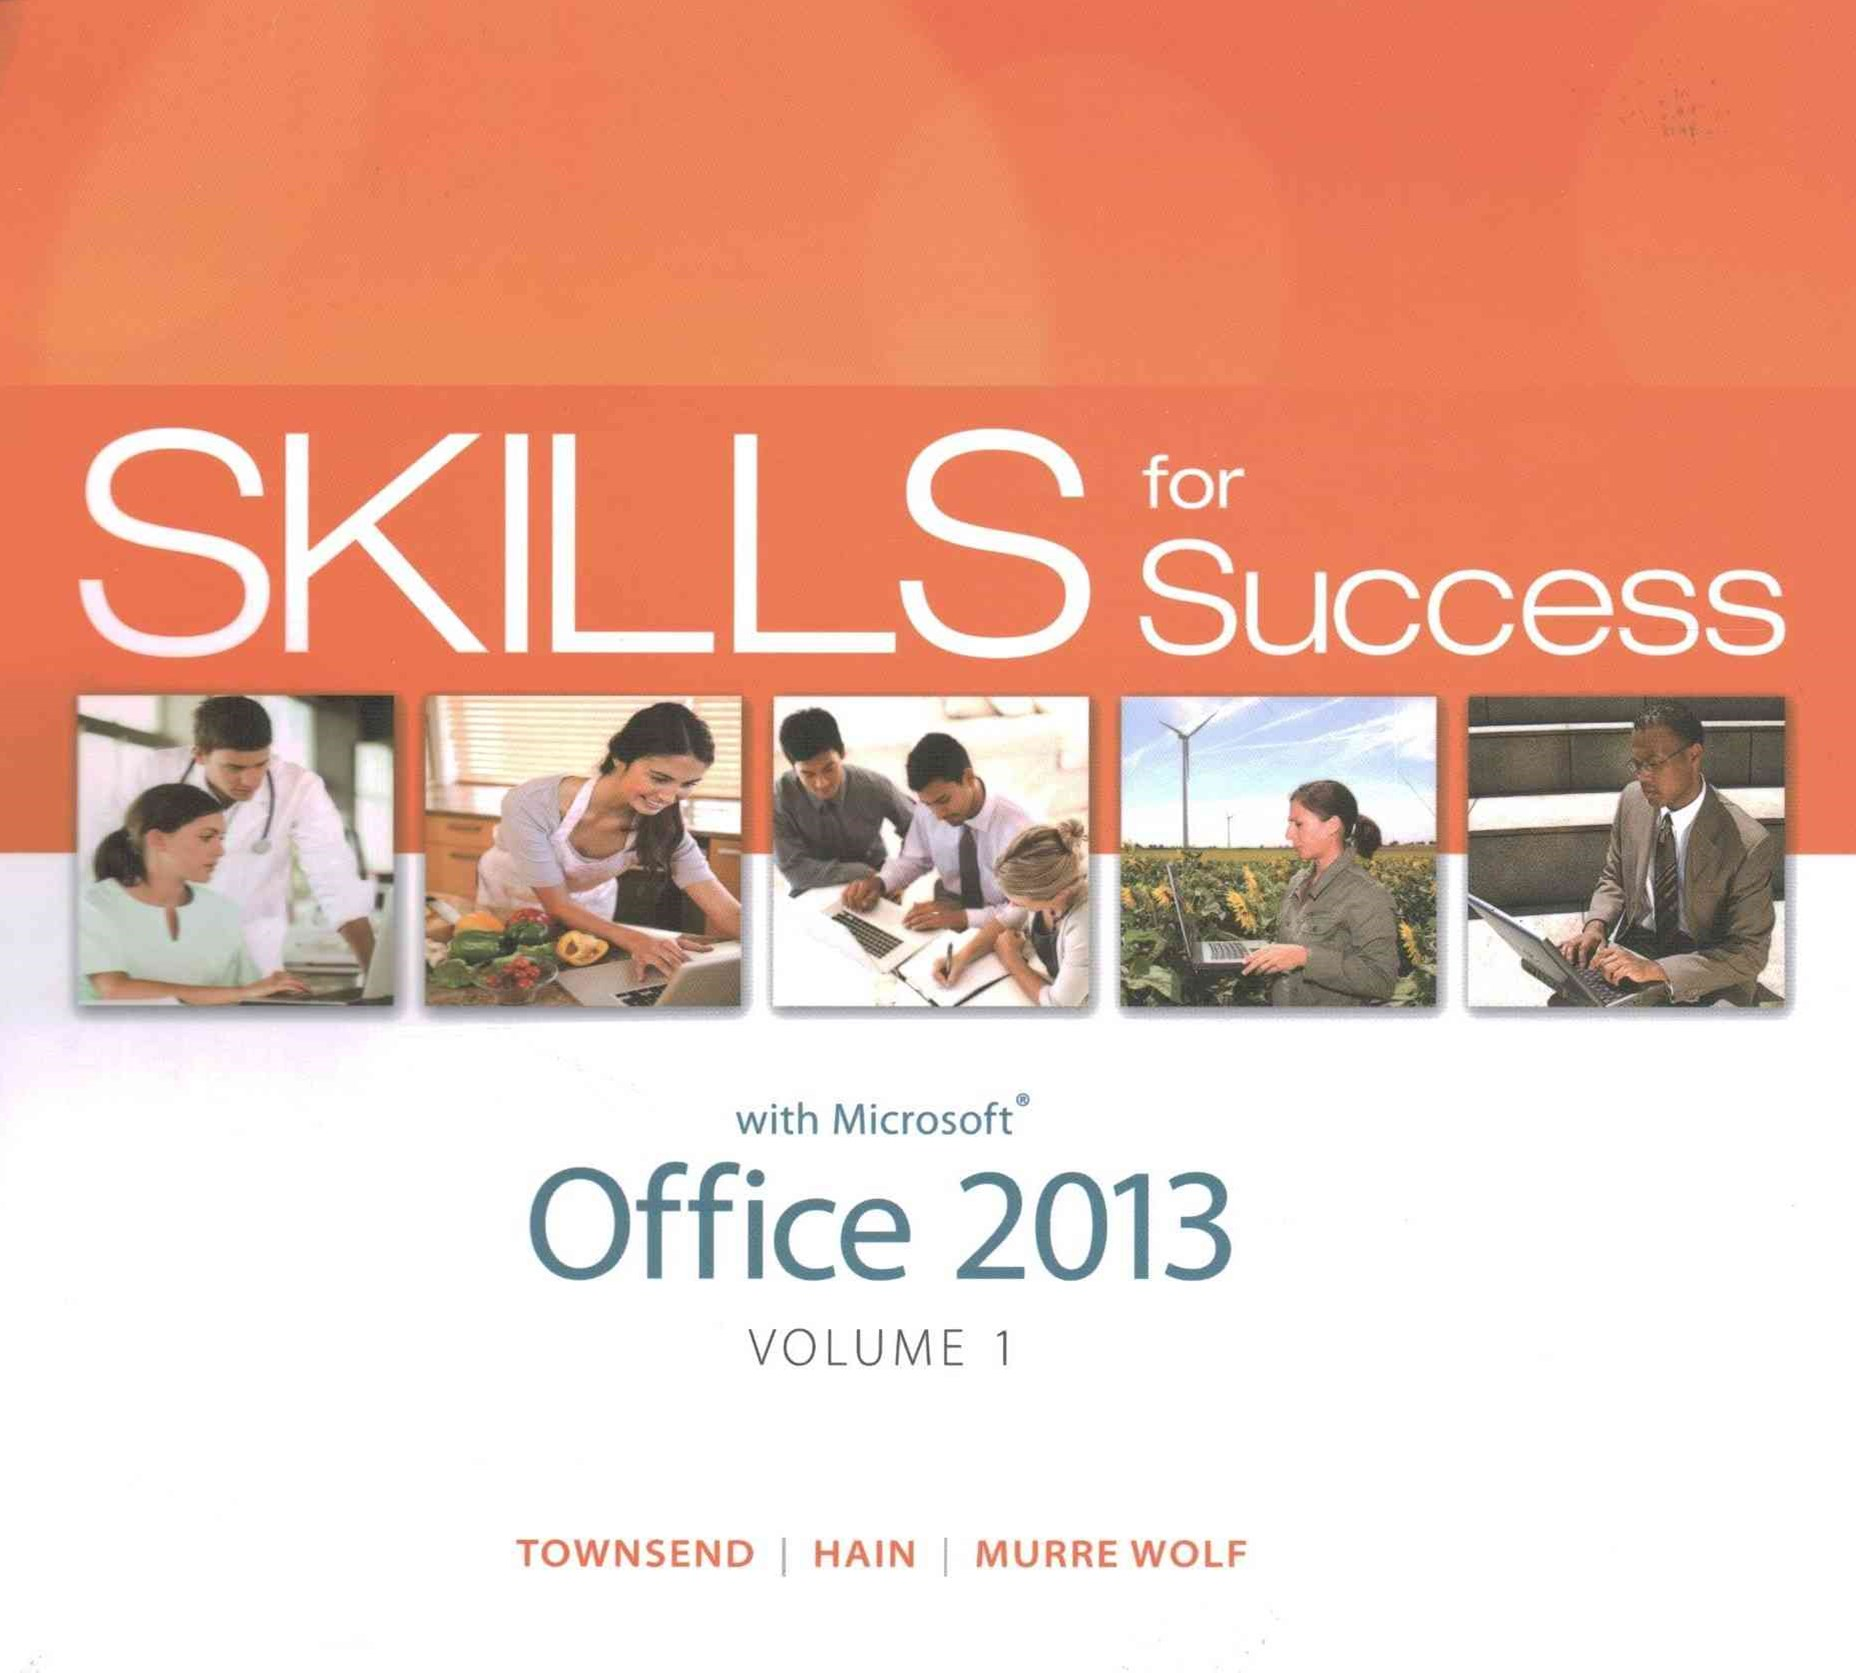 Skills for Success with Office 2013 Volume 1 and Skills for Success with Windows 7 Getting Started